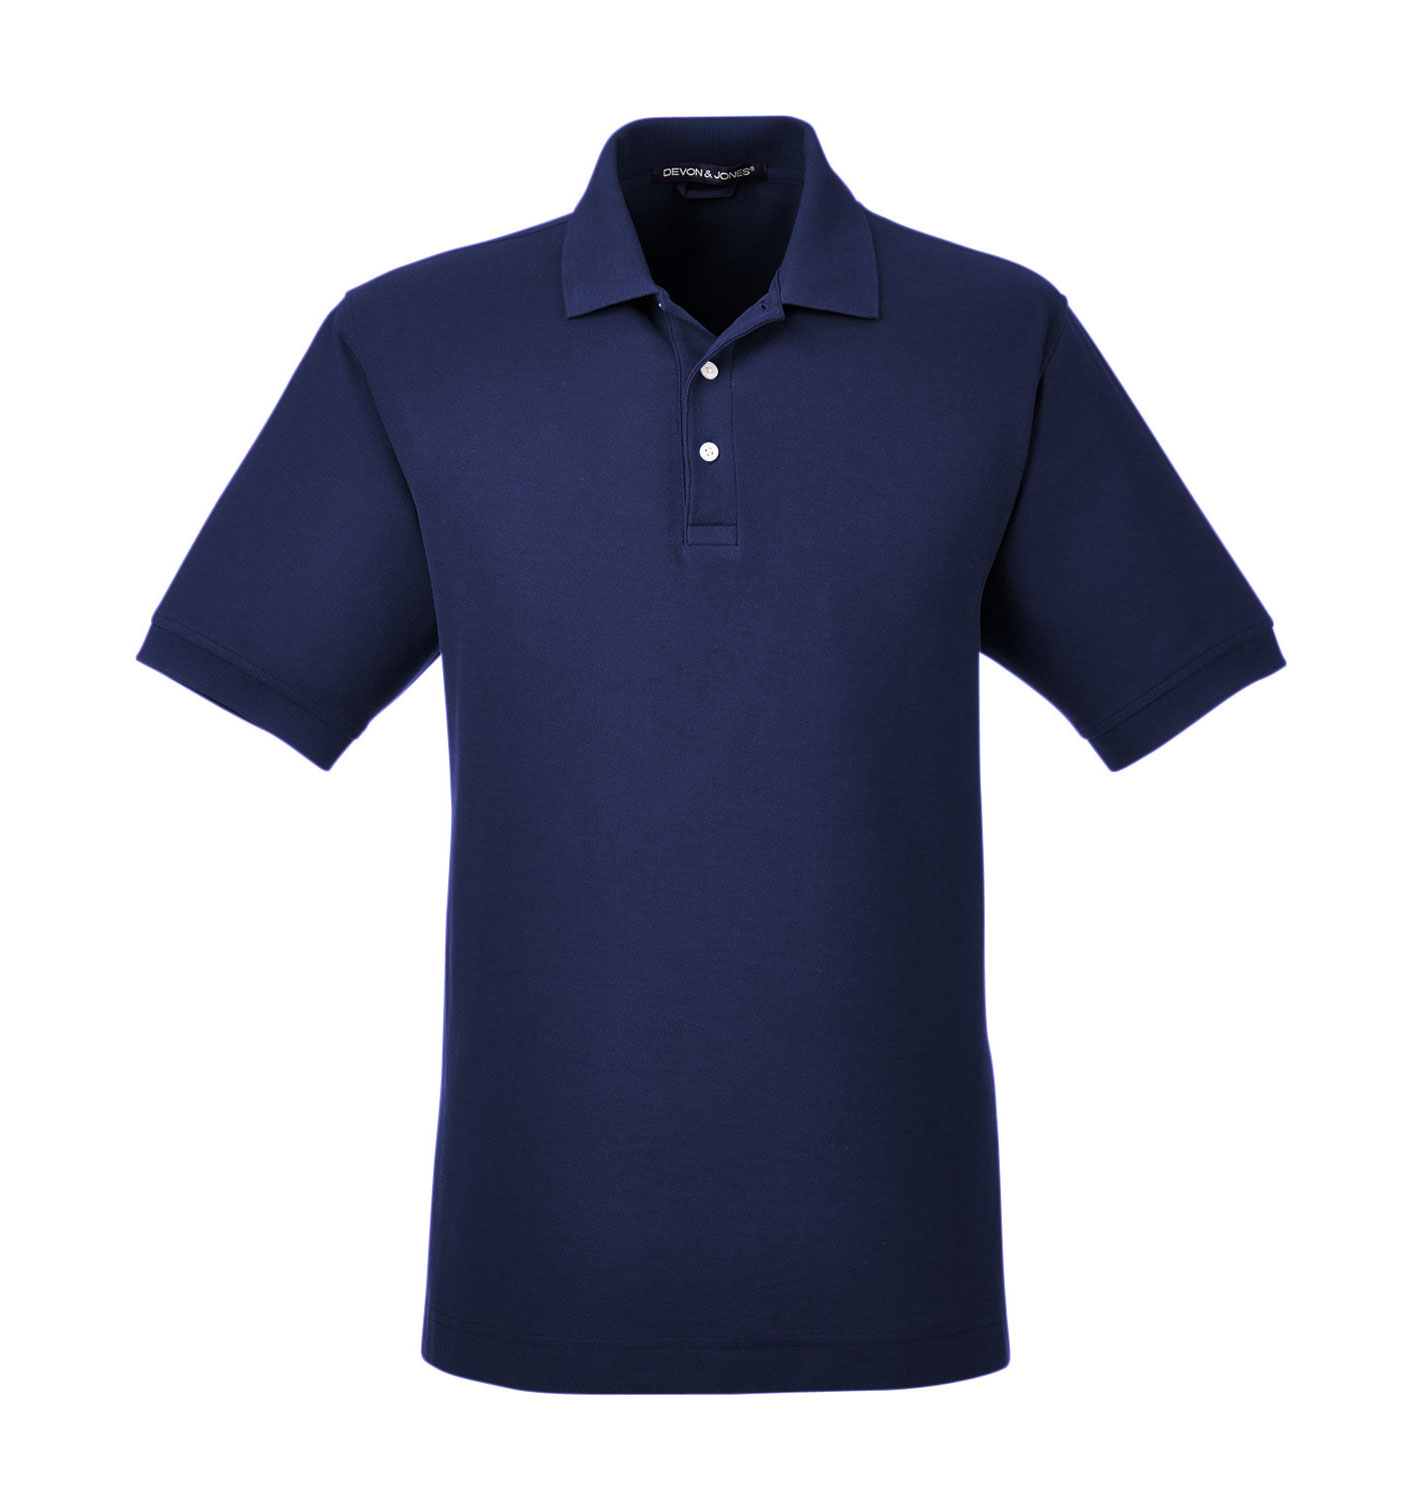 Devon & Jones Mens Pima Piqué Short-Sleeve Polo